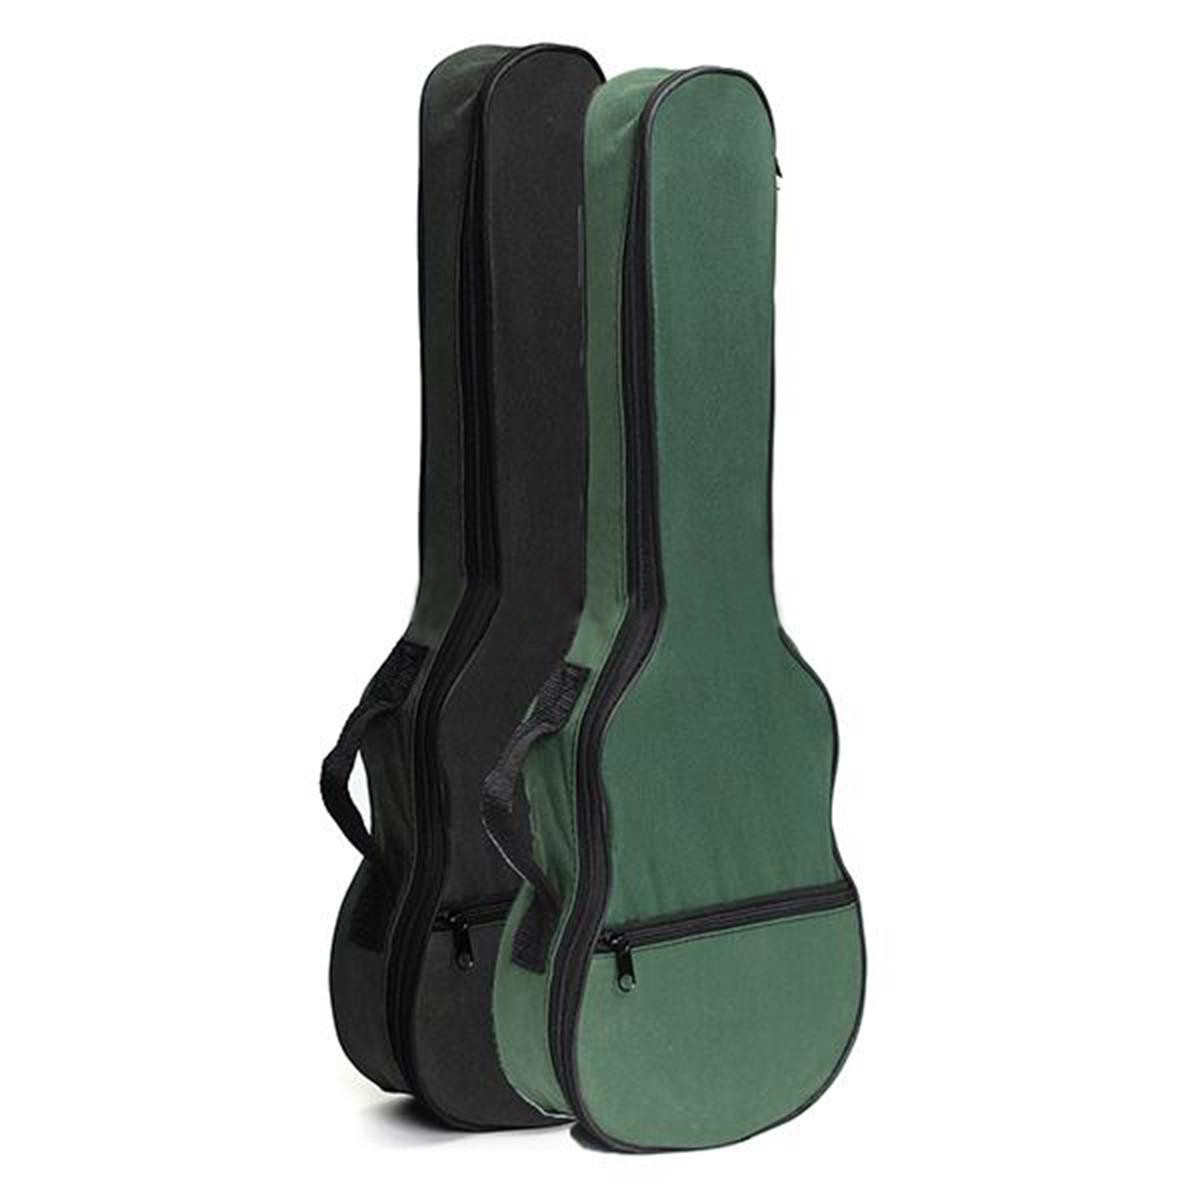 Zebra 21'' Acoustic Guitar Bag Ukulele Case Box Guitarra Backpack with Shoulder Straps For Musical Instruments Parts Accessories two way regulating lever acoustic classical electric guitar neck truss rod adjustment core guitar parts